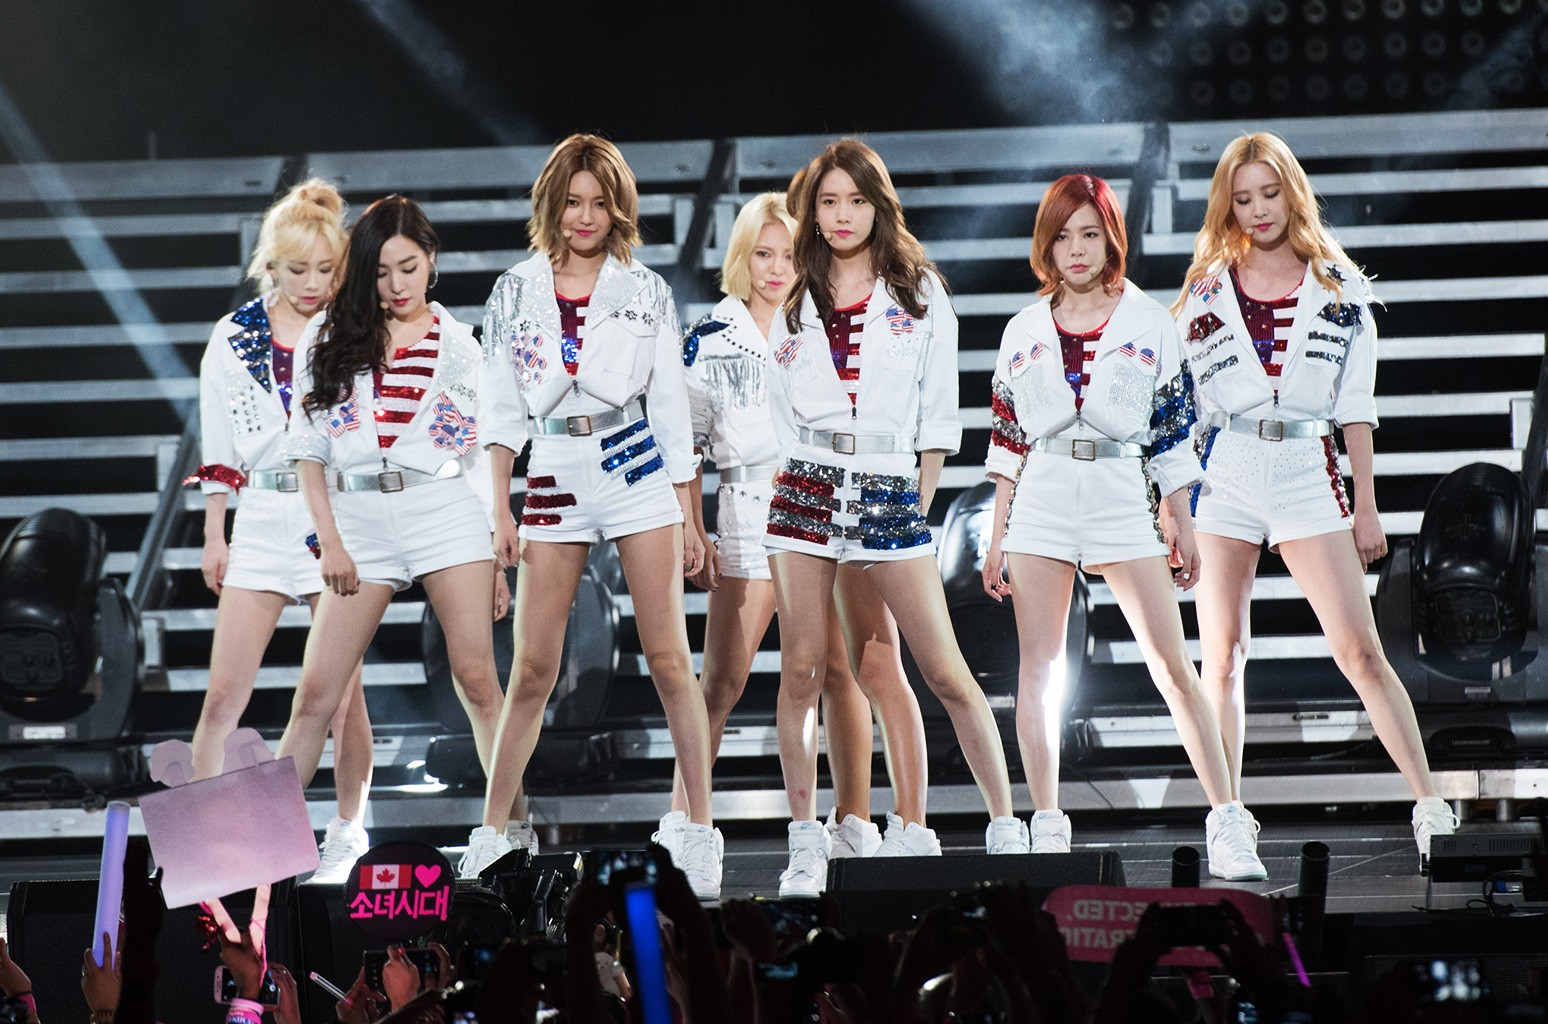 Susan Soonkyu Lee, Choi Soo-young, Im Yoona, Kim Hyo-yeon, Seo Ju-hyun, Stephanie Young Hwang, Kim Tae-yeon, and Kwon Yuri of Girls' Generation perform at the 2015 K-Pop Festival at Prudential Center on Aug. 8, 2015 in Newark, New Jersey.